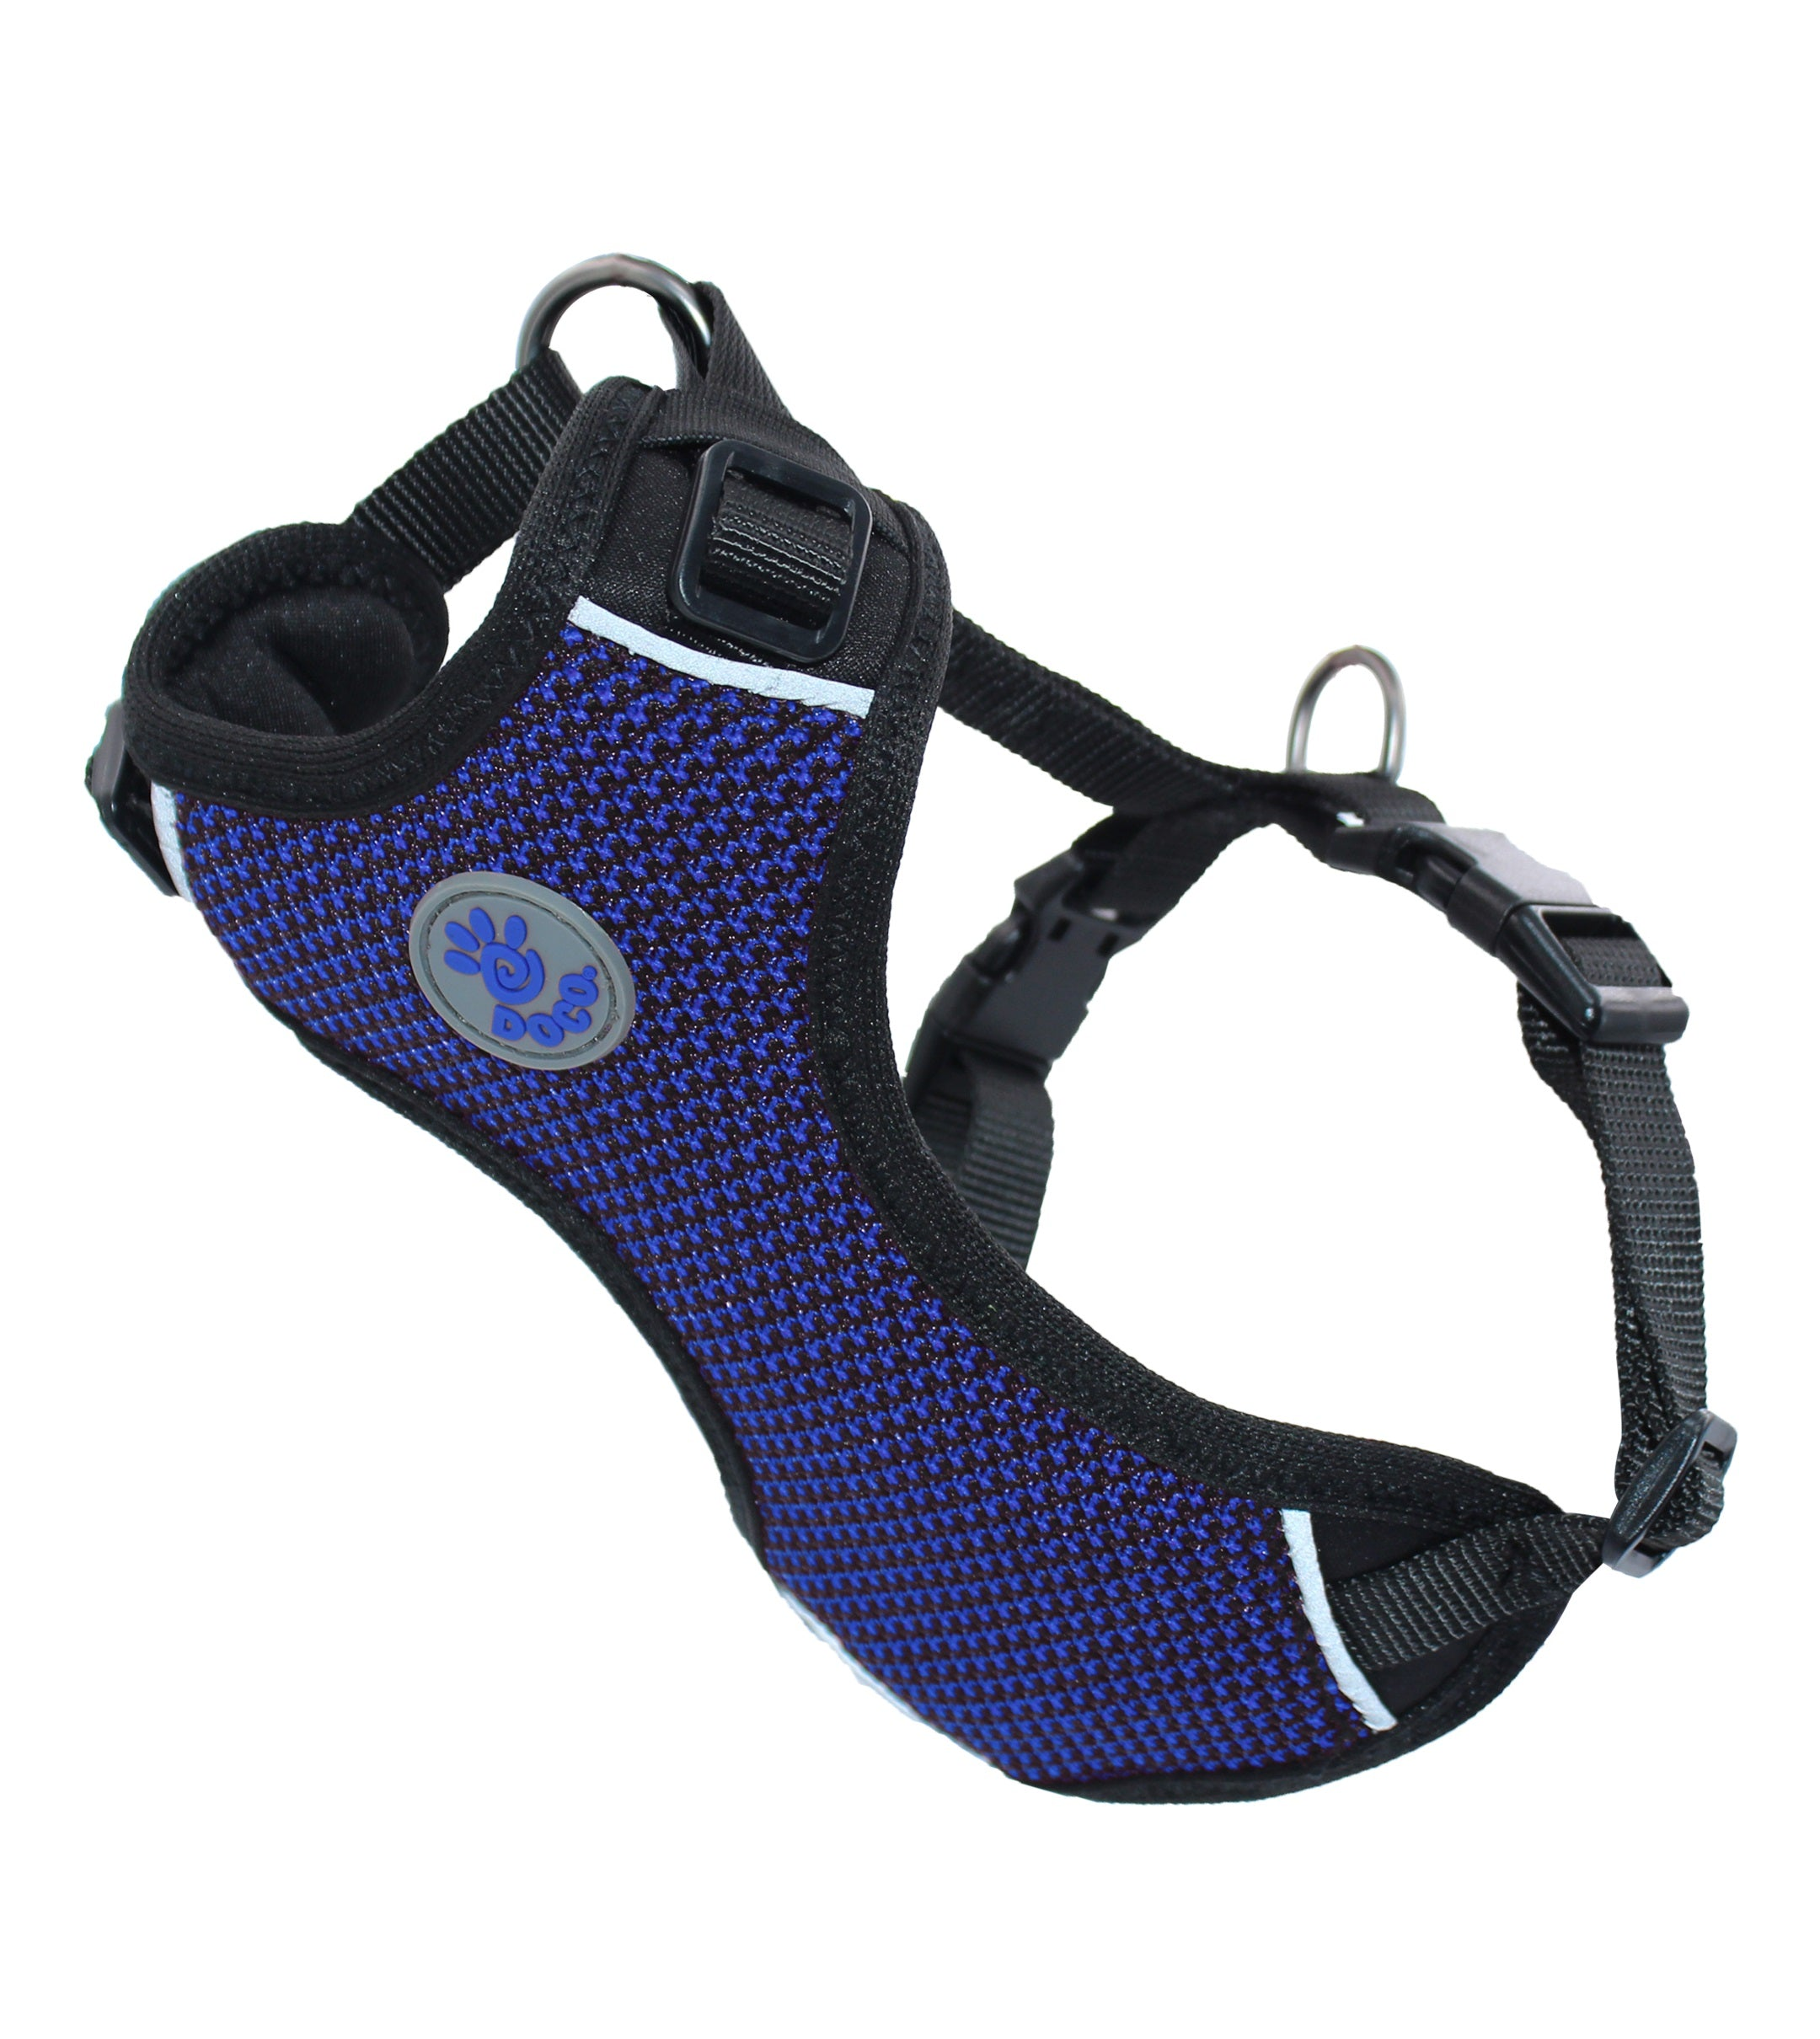 DOCO® Athletica 3D Airflow Foam Harness - www.docopet.com